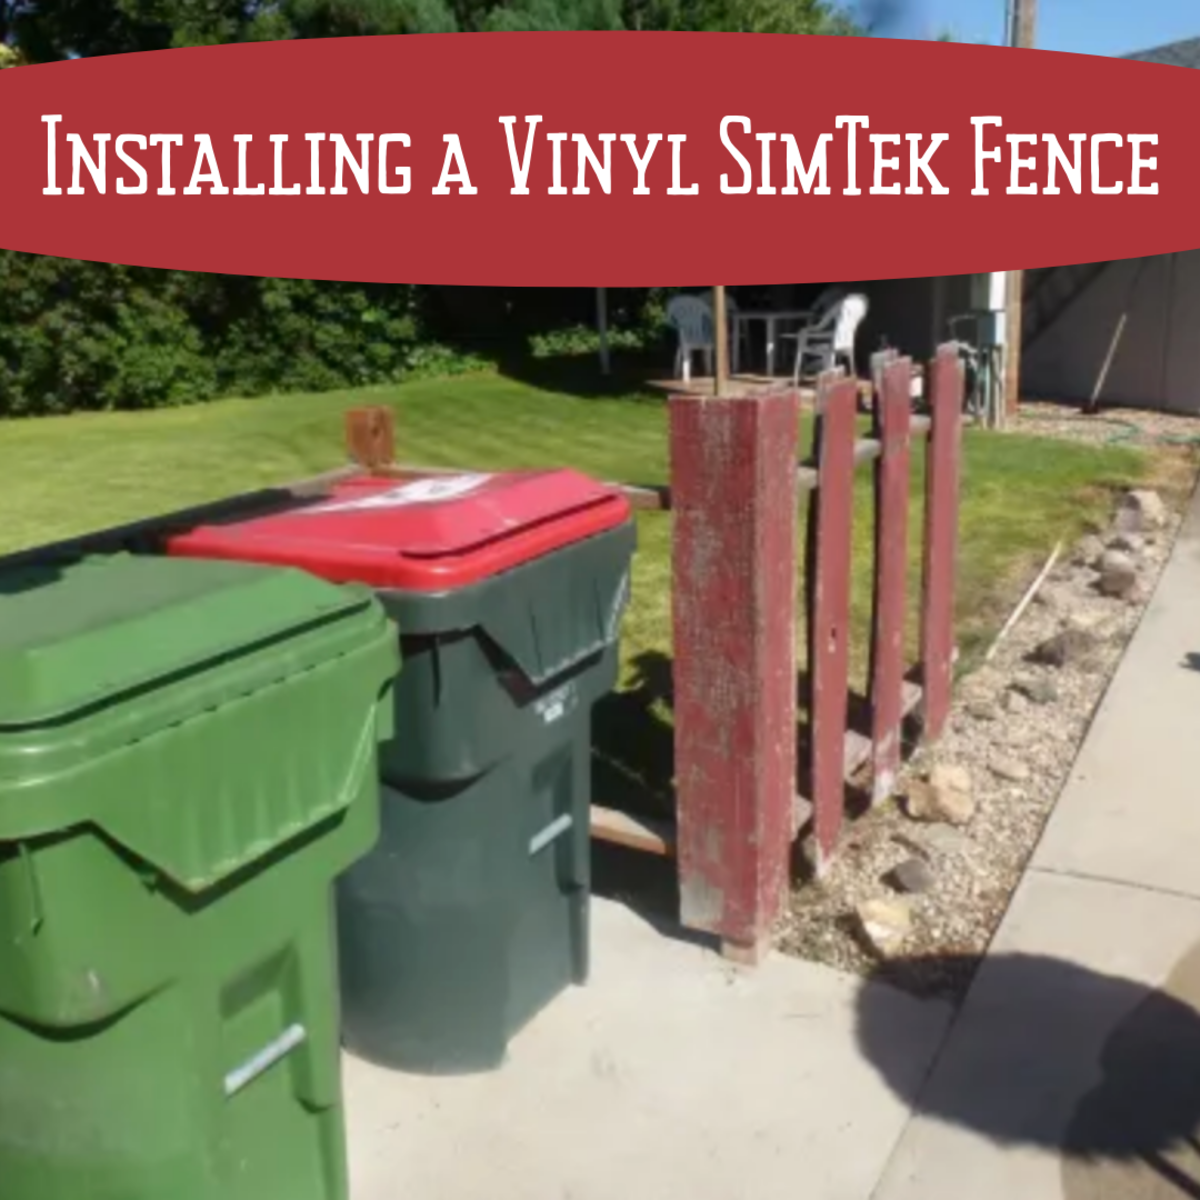 This in-depth article will guide you step by step through the process of installing a SimTek fence